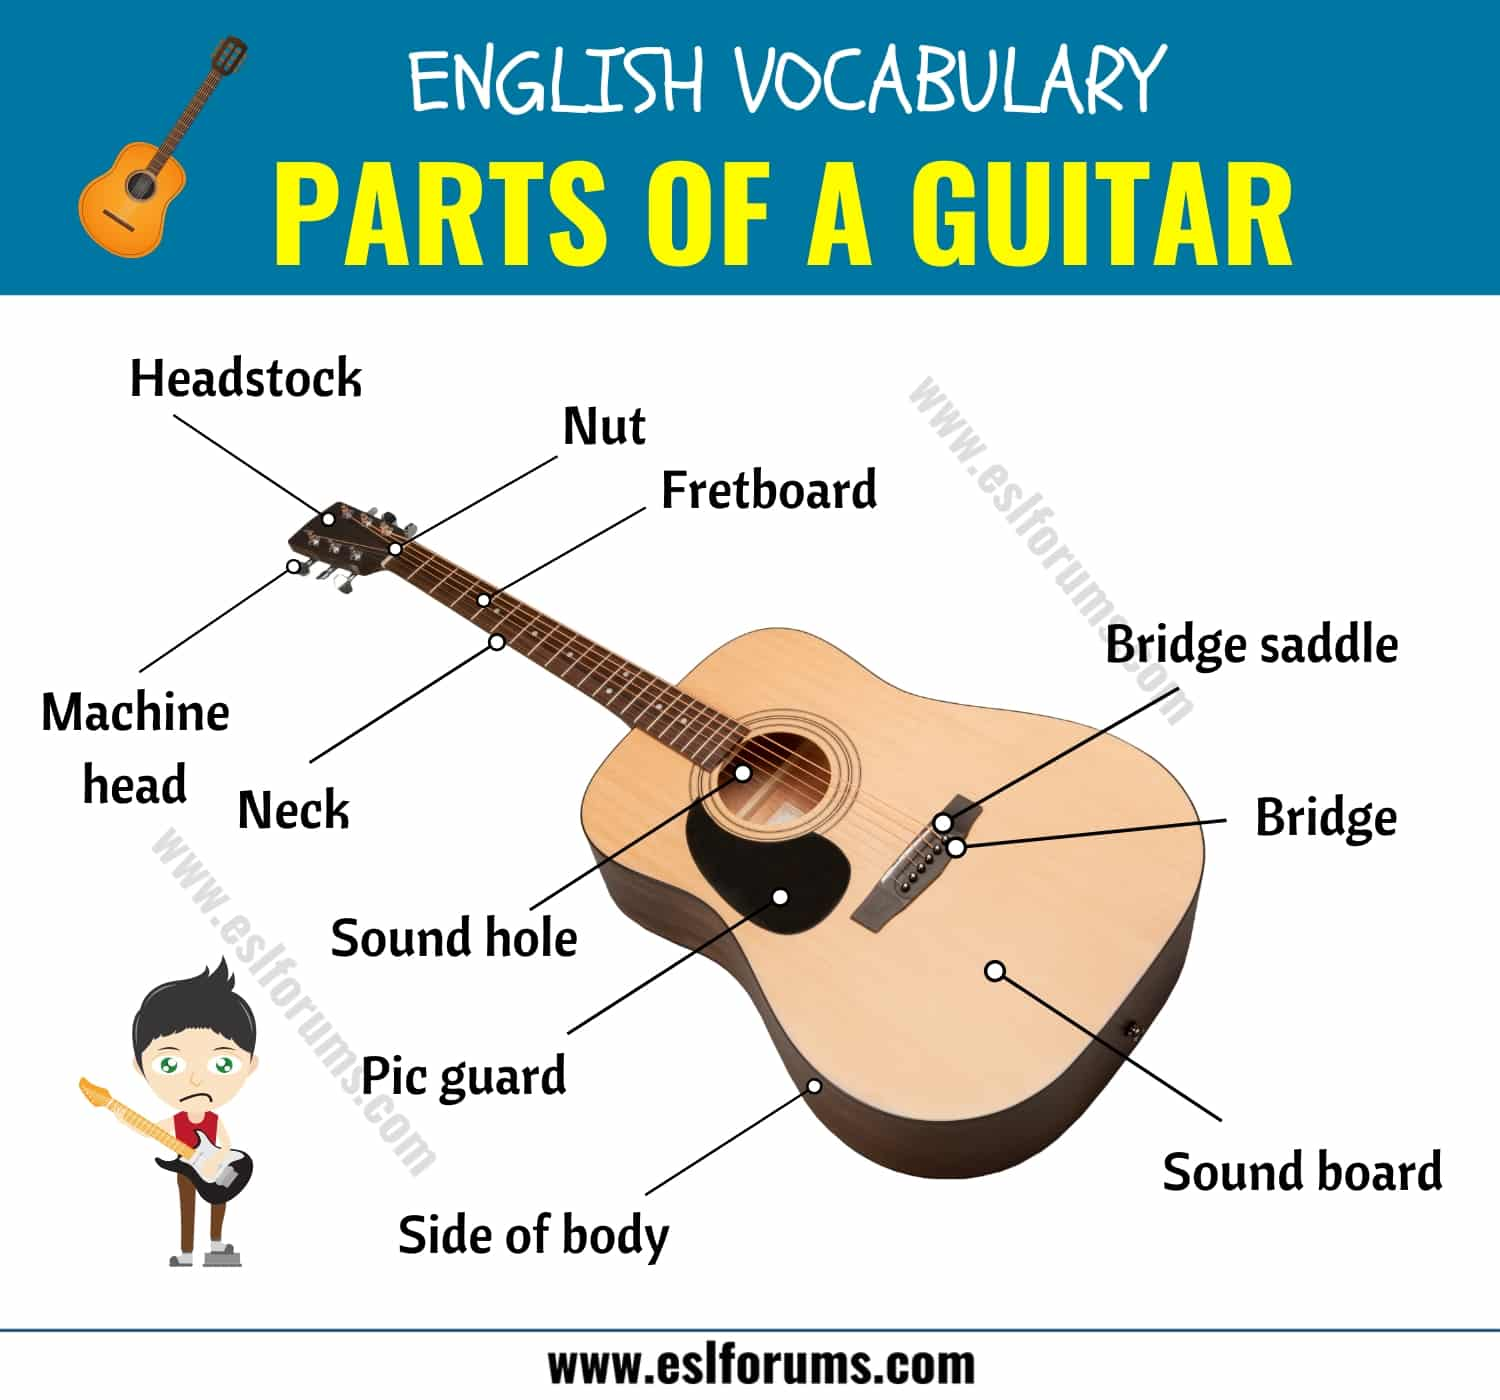 Parts of A Guitar: Different Parts of A Guitar in English with ESL Picture! 2